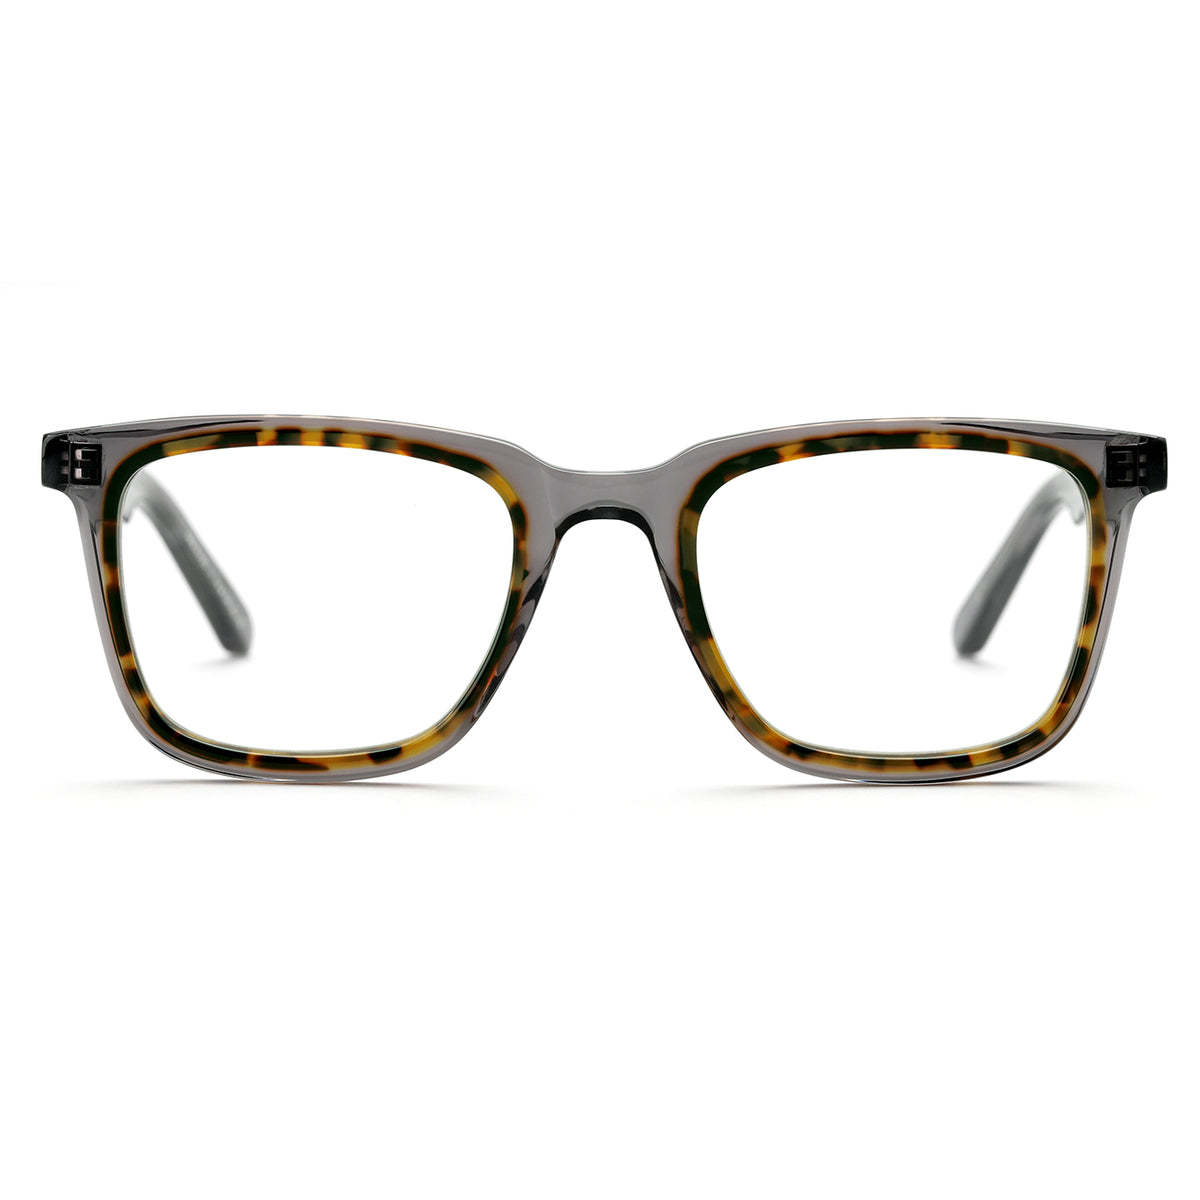 JOSEPH | Ash to Blonde Tortoise - handcrafted acetate eyewear